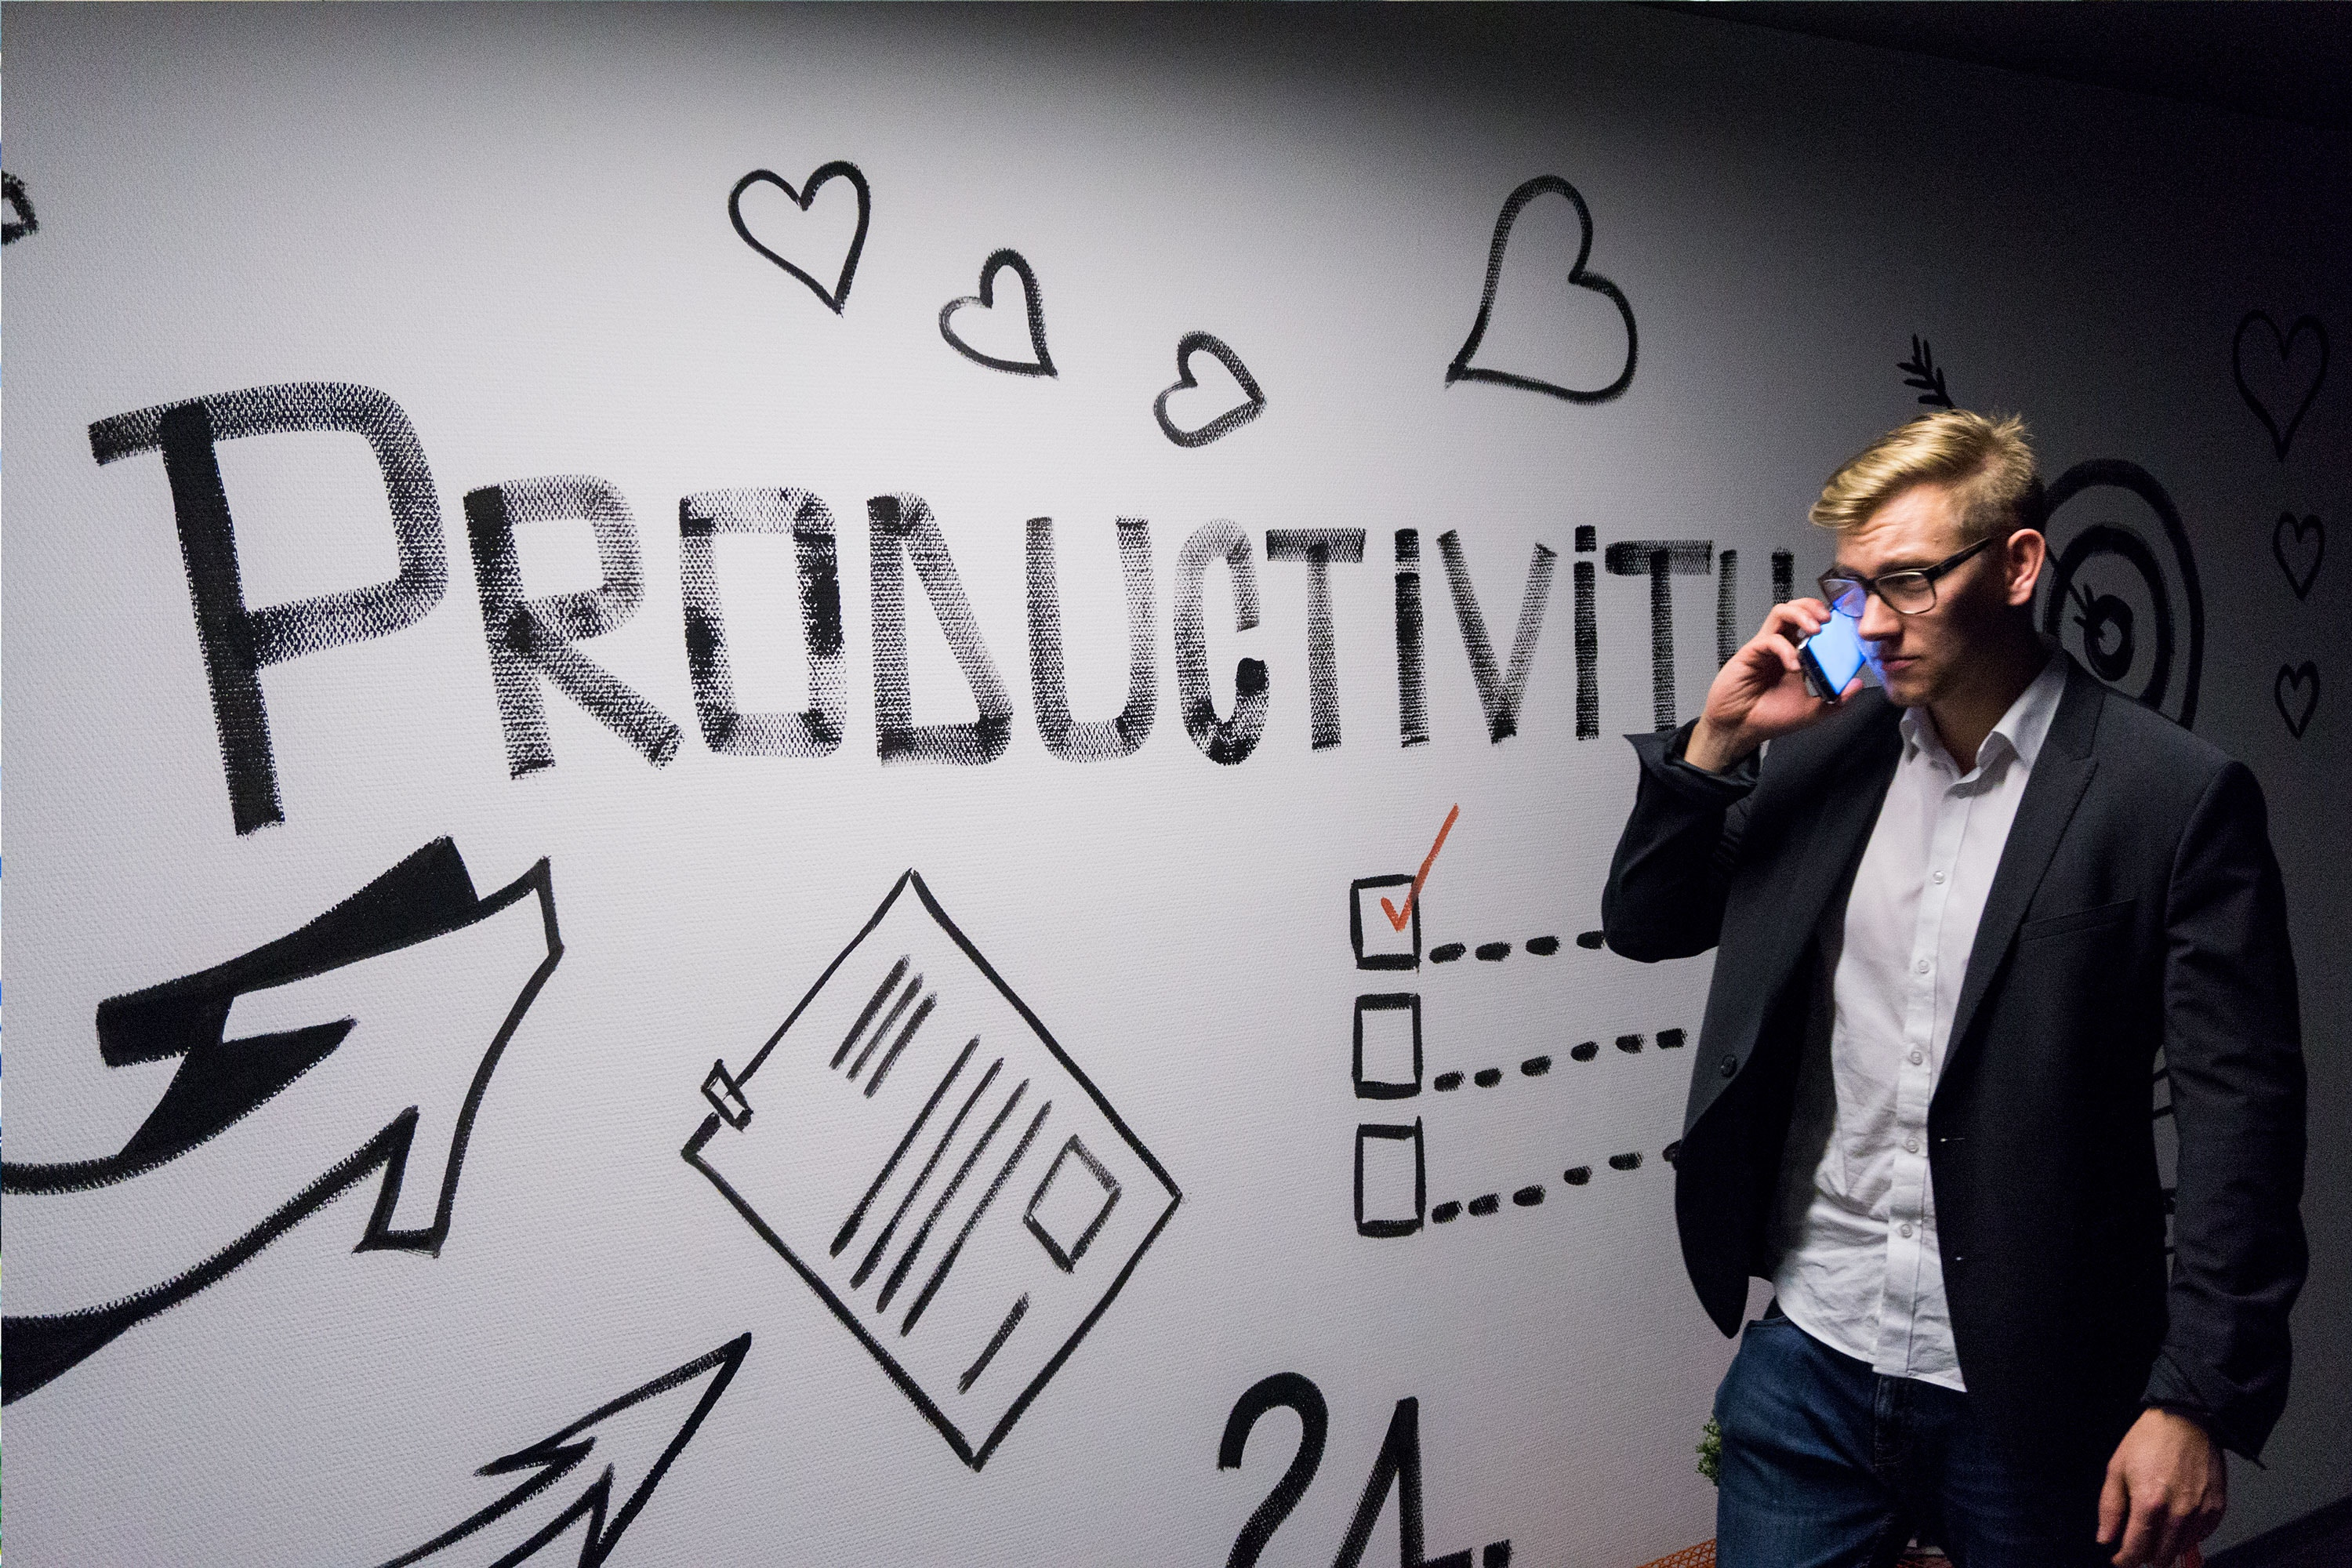 Busy leader in front of white board with productivity